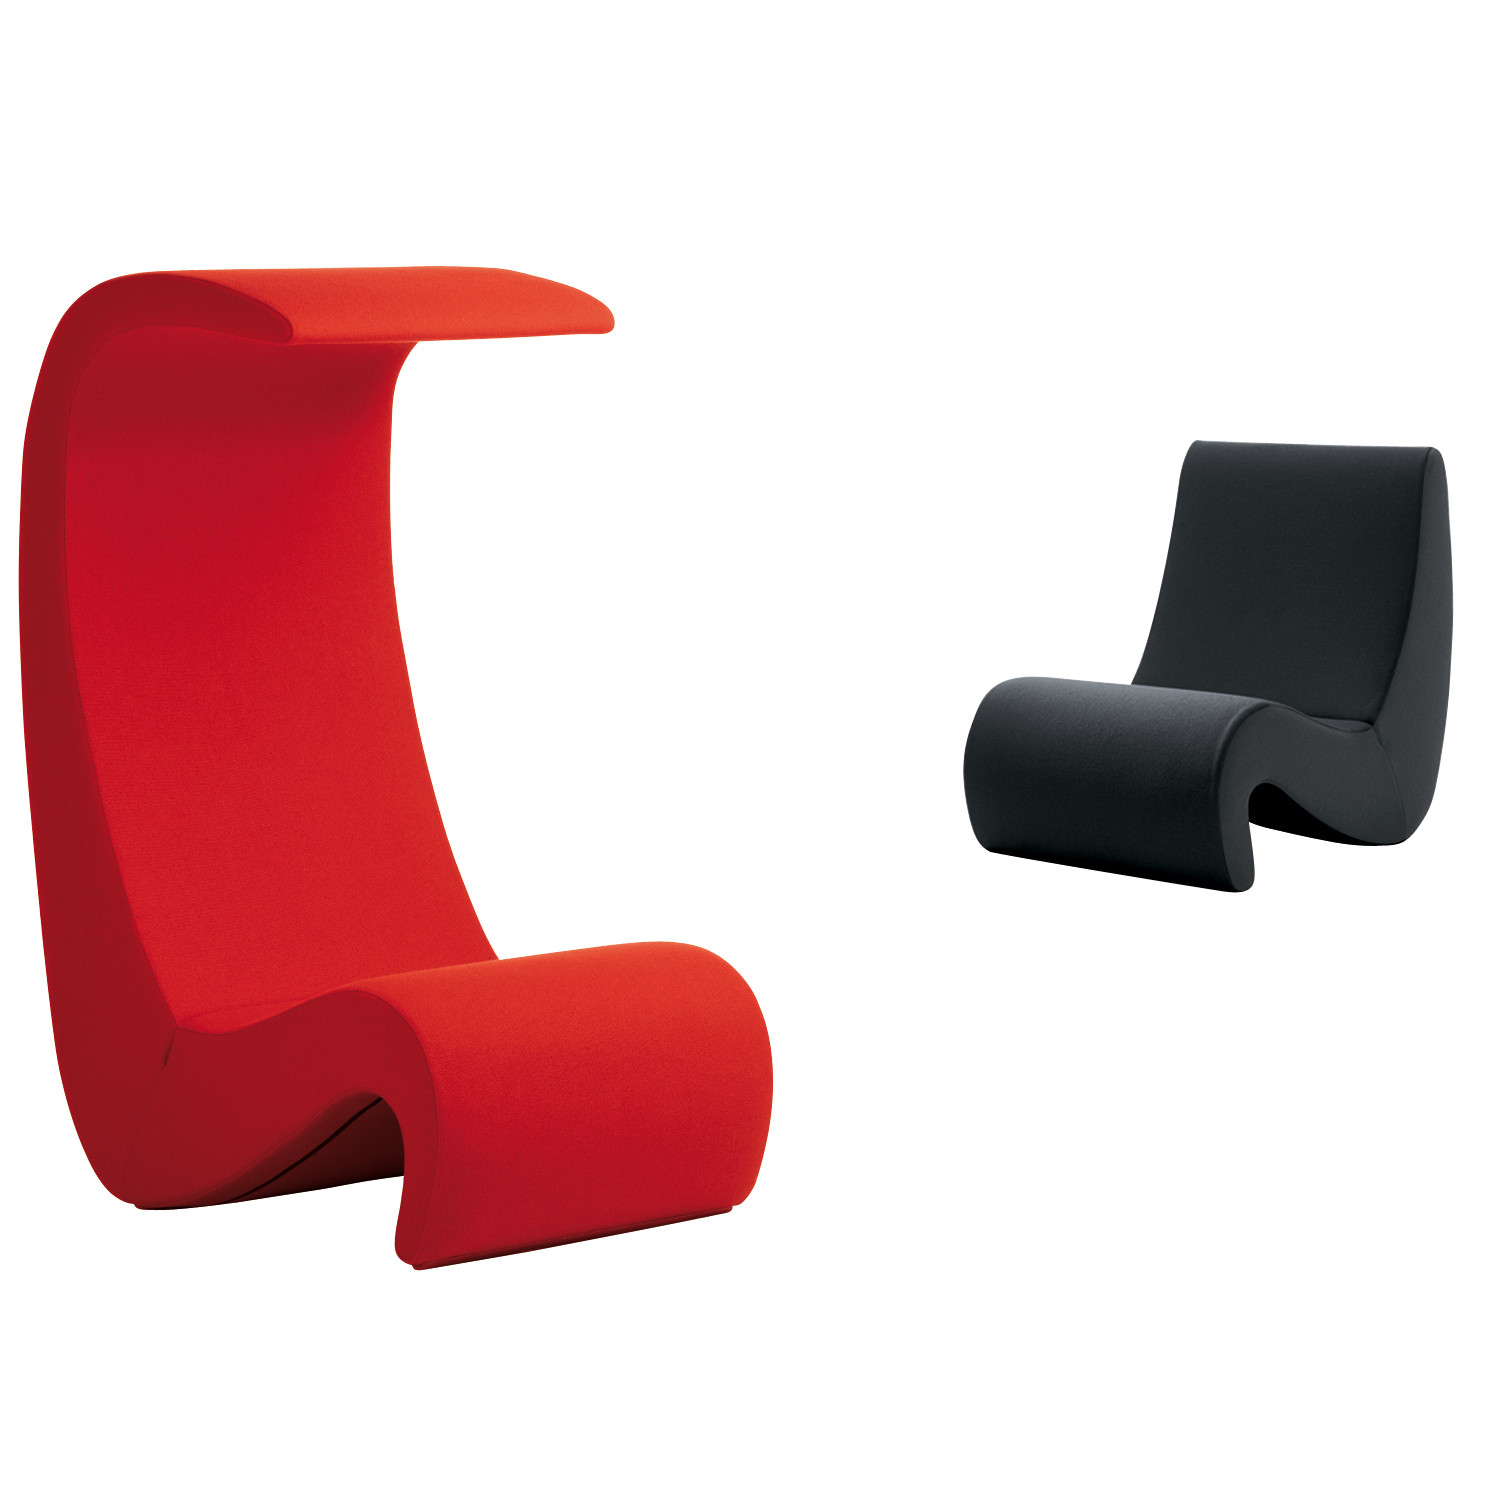 Amoebe Highback Chairs by Vitra Home Collection   Apres Furniture